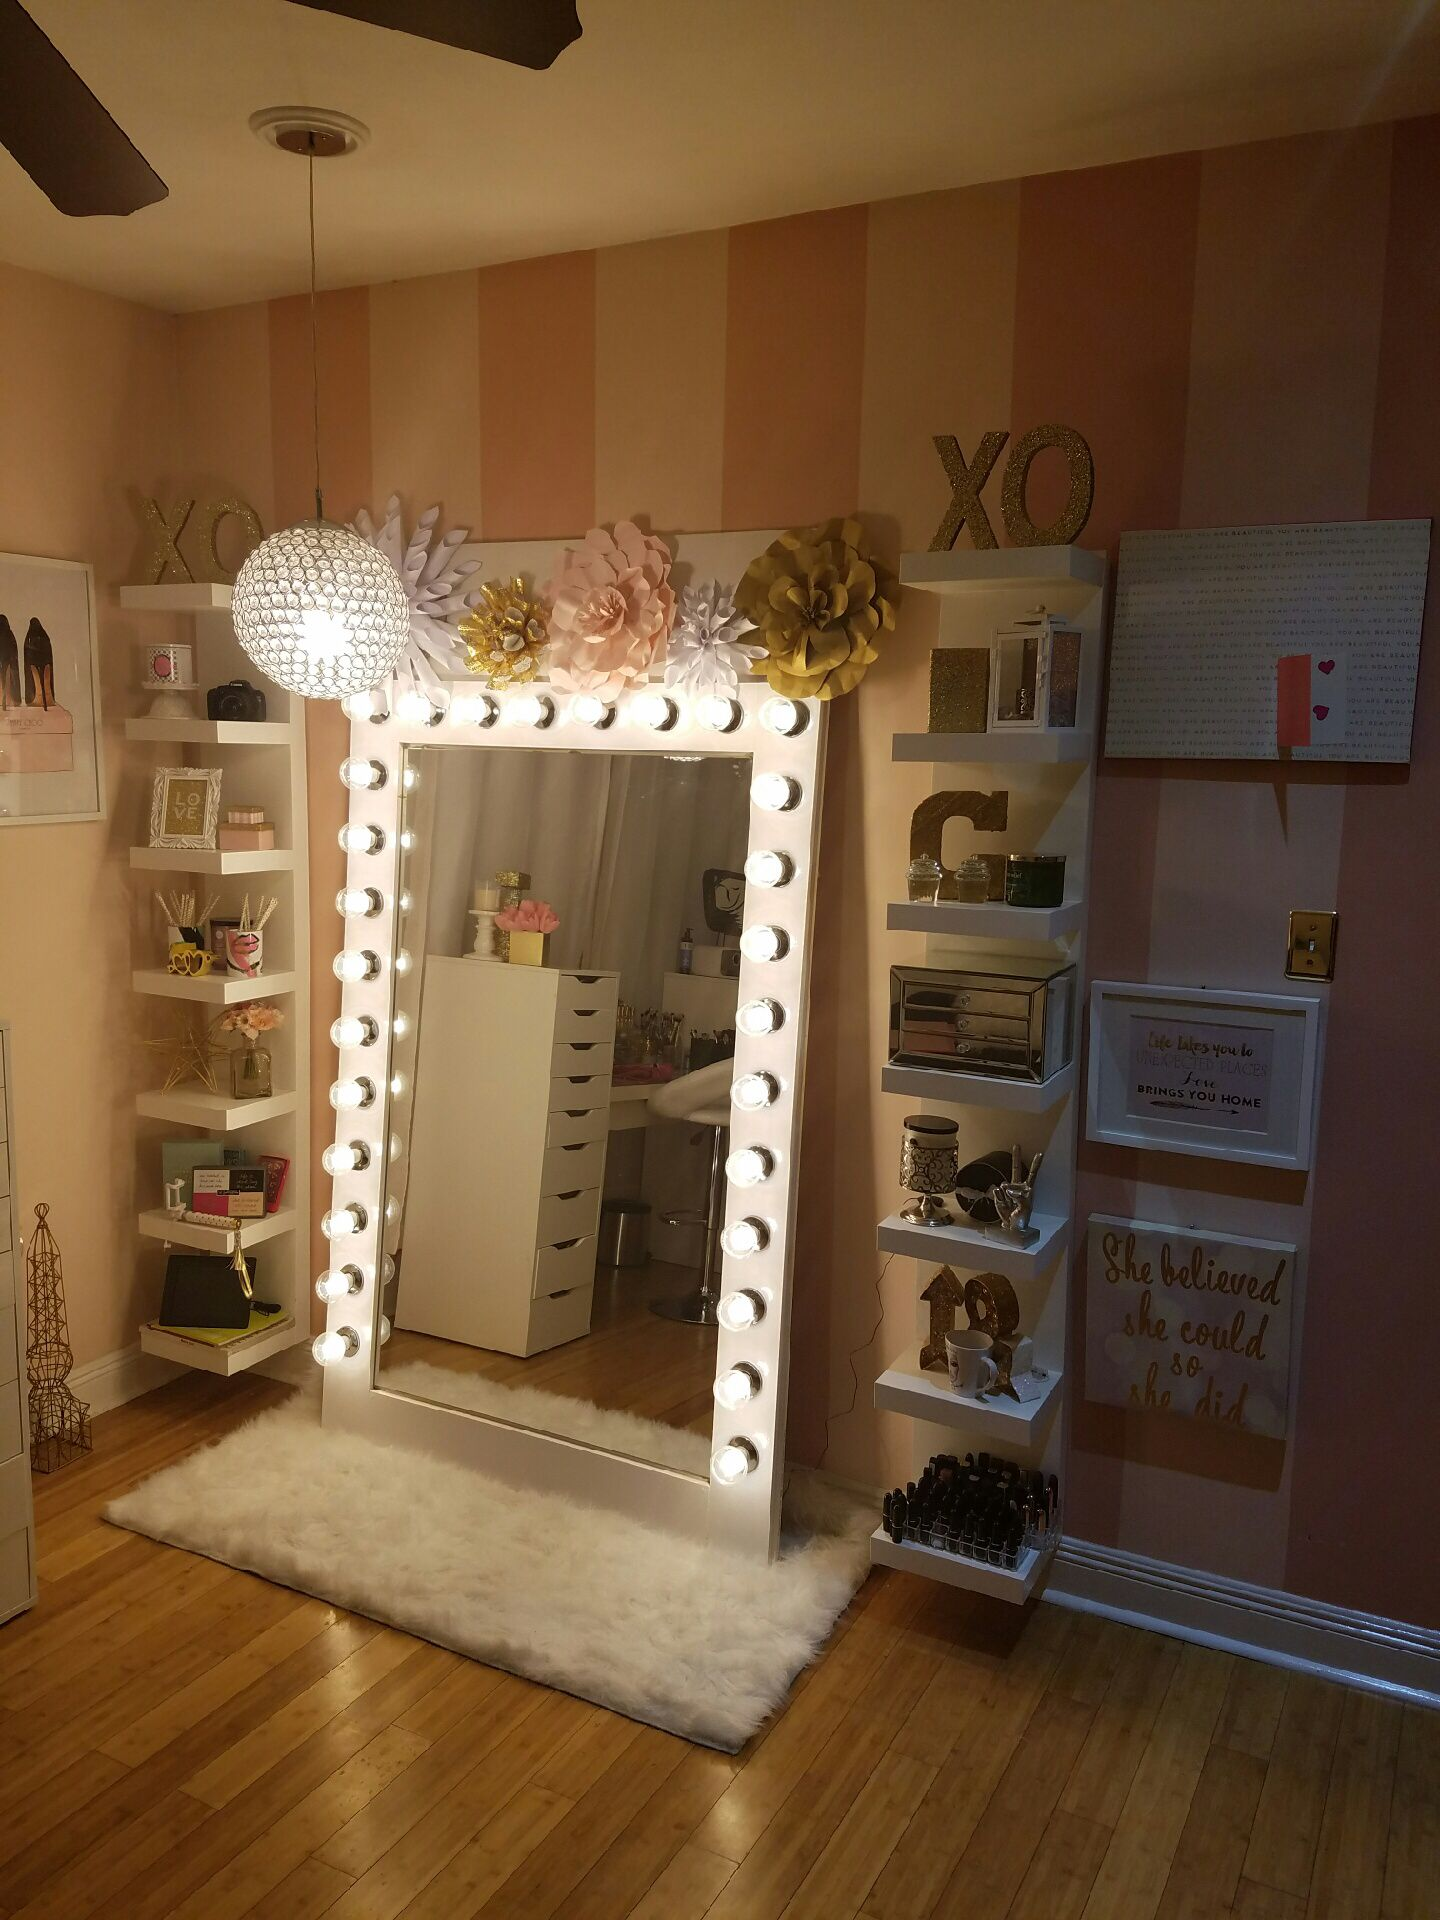 17 diy vanity mirror ideas to make your room more beautiful makeup makeup storage with diy style hollywood glam light solutioingenieria Image collections